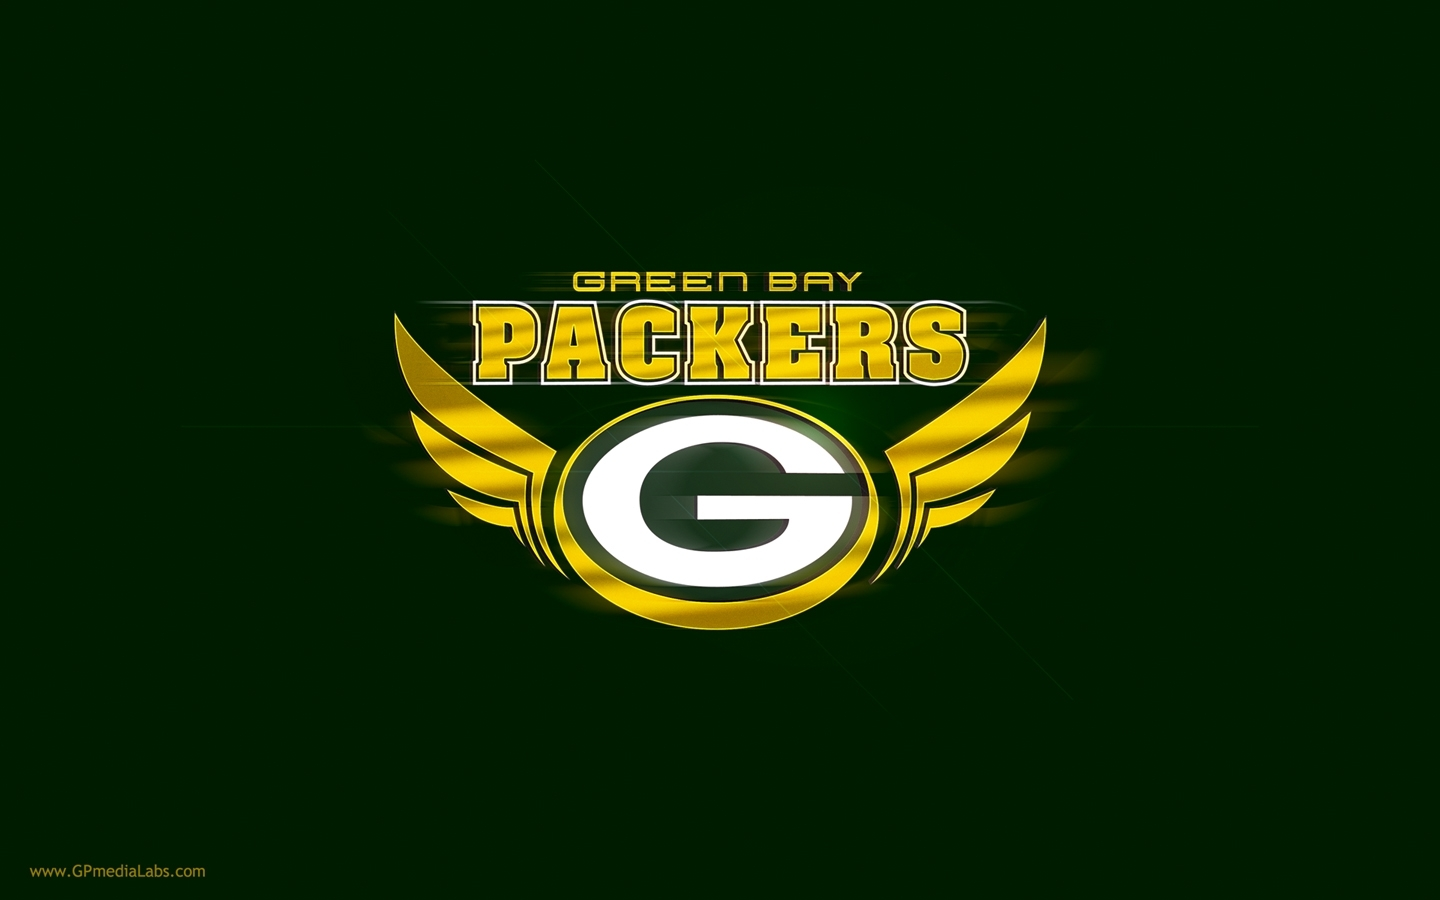 green bay packers wallpaper logo wings photo